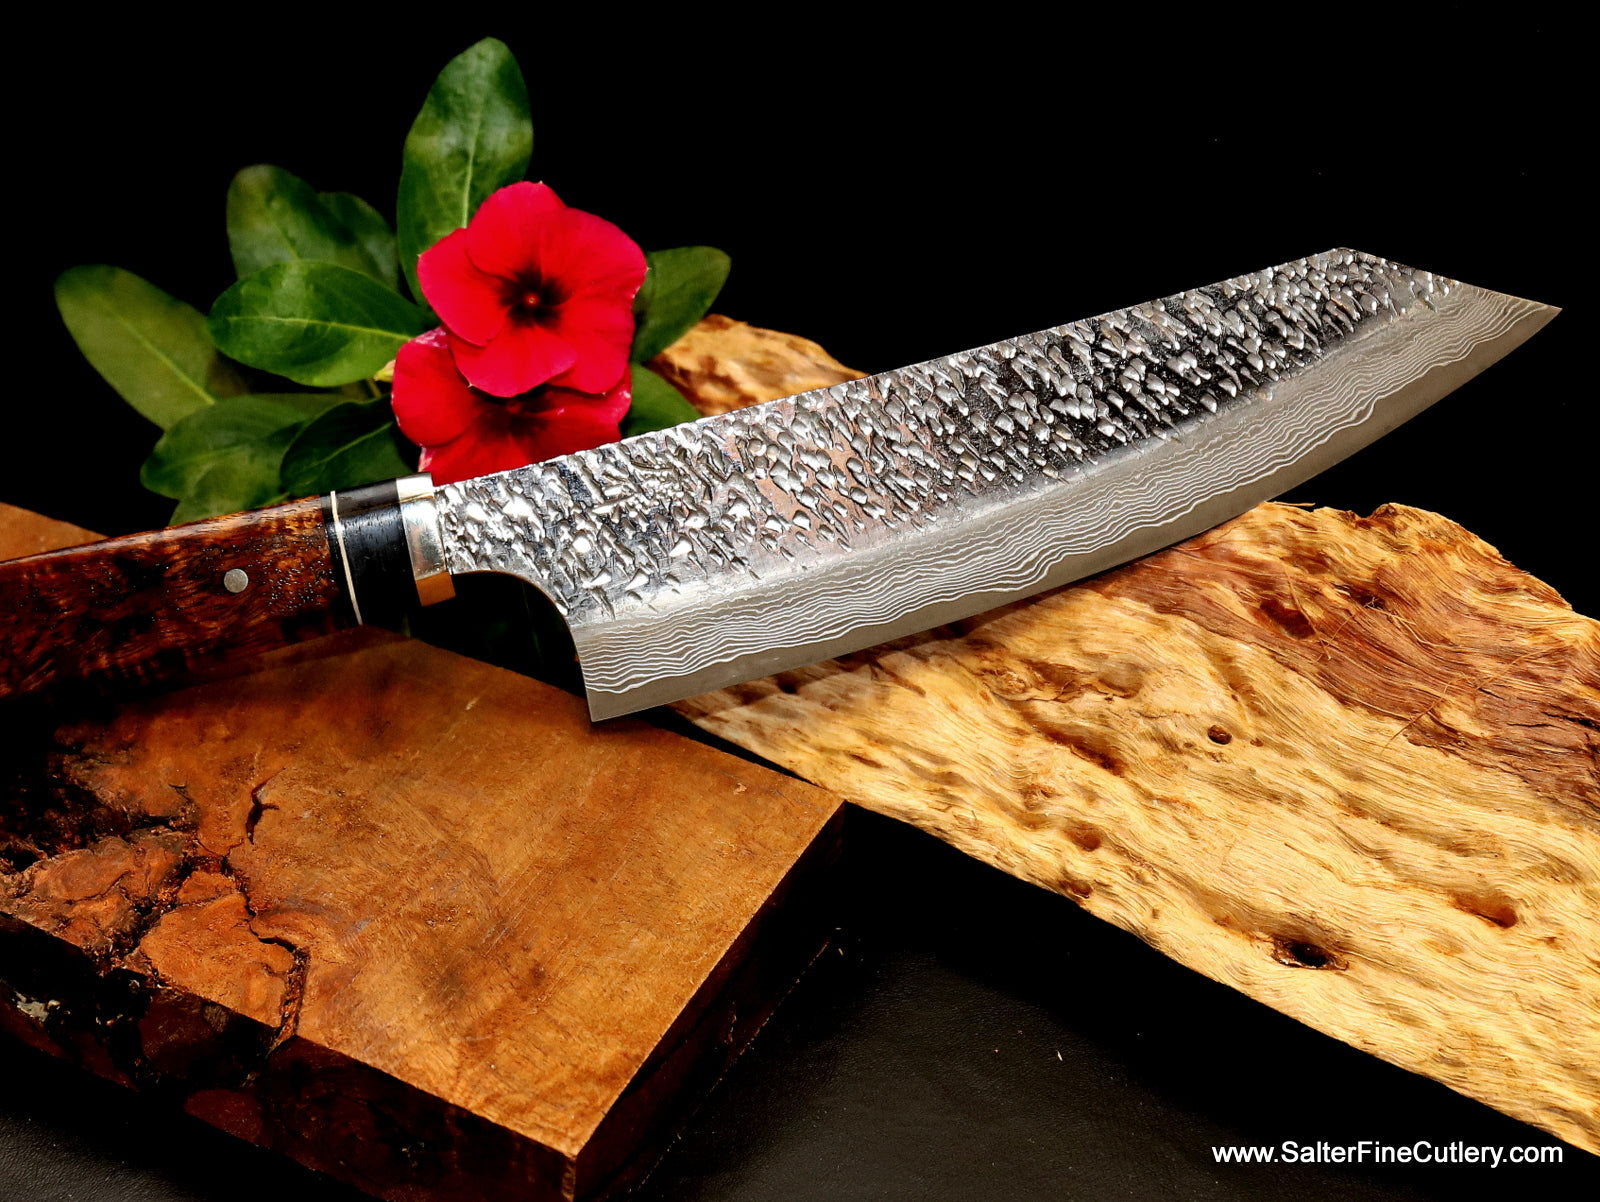 180mm Raptor design series vegetables and meat kitchen knife by Salter Fine Cutlery